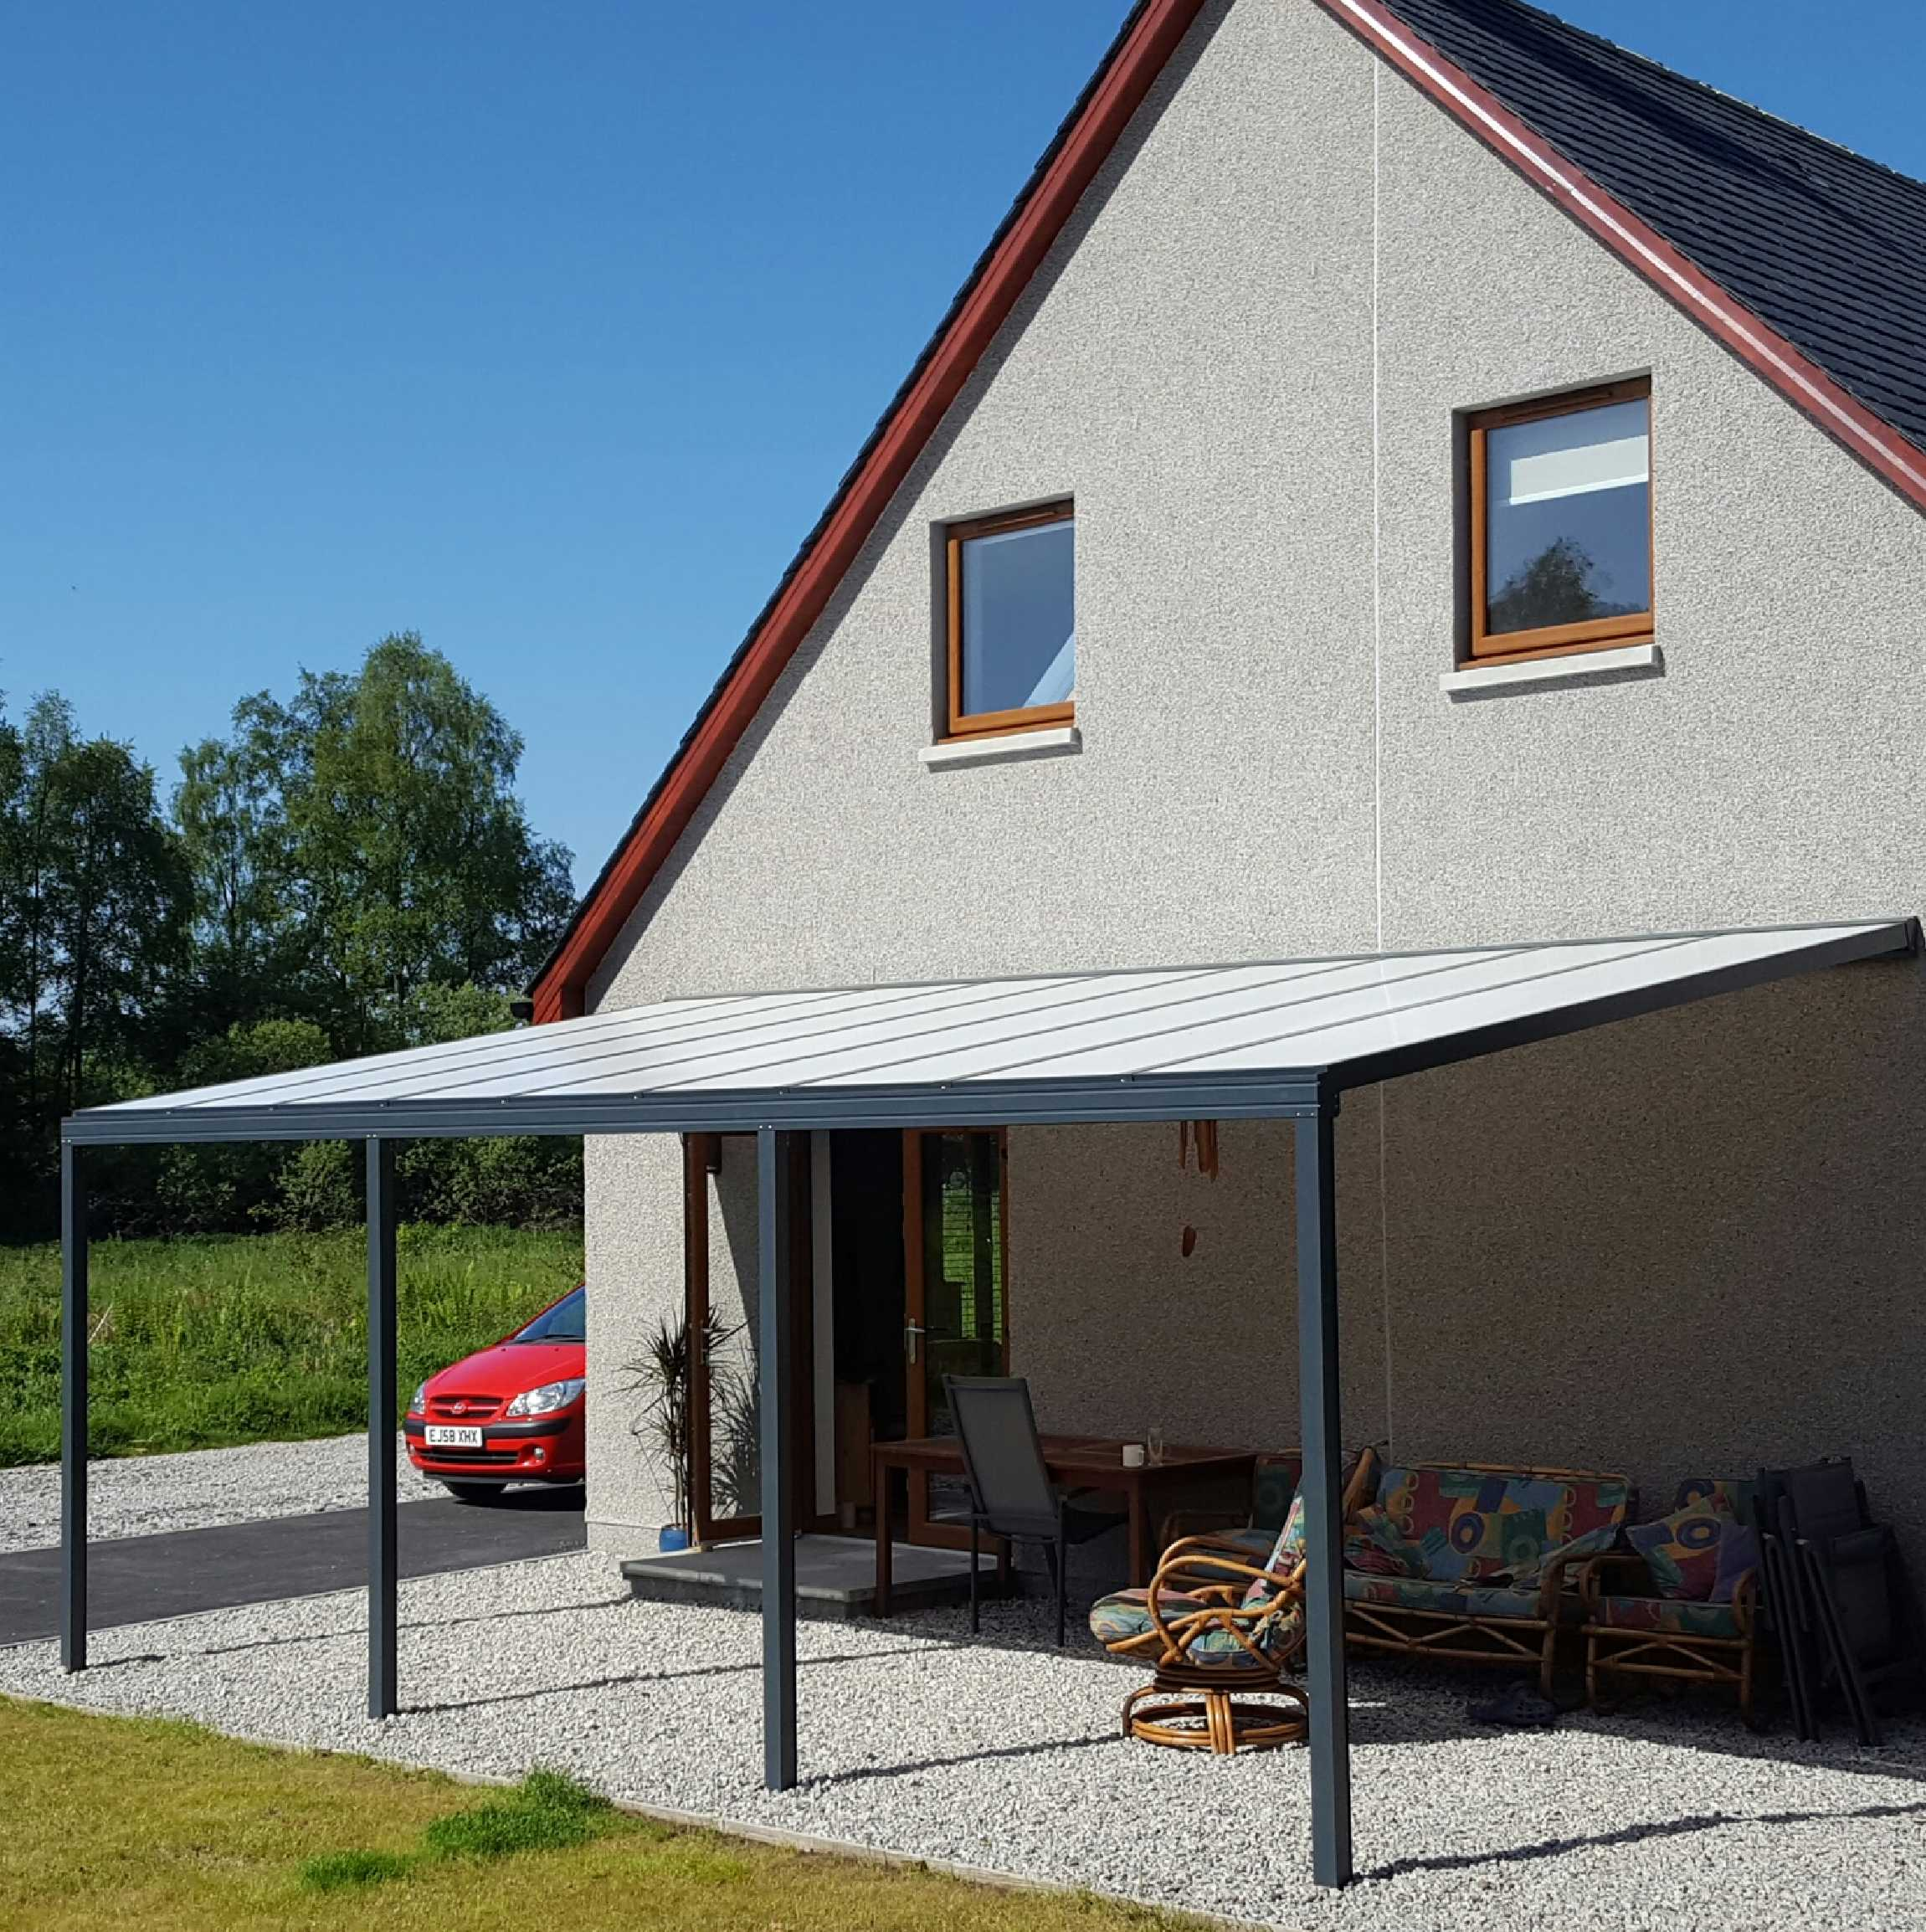 Great selection of Omega Smart Lean-To Canopy, Anthracite Grey, 16mm Polycarbonate Glazing - 10.2m (W) x 4.5m (P), (5) Supporting Posts